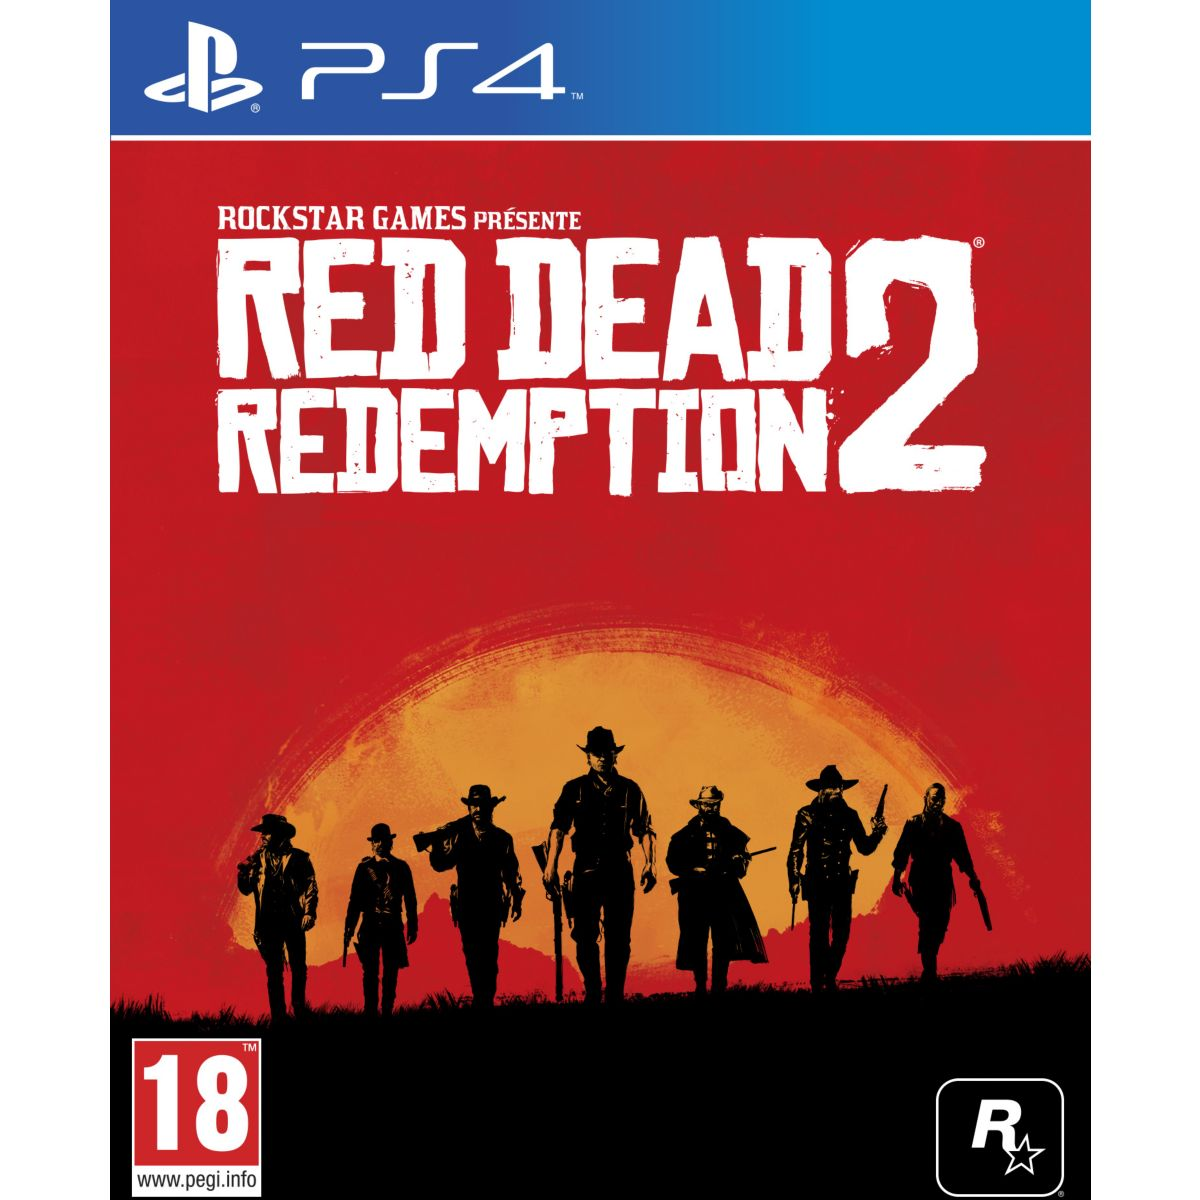 Jeu PS4 ROCKSTAR GAMES Red Dead Redemption 2 (photo)